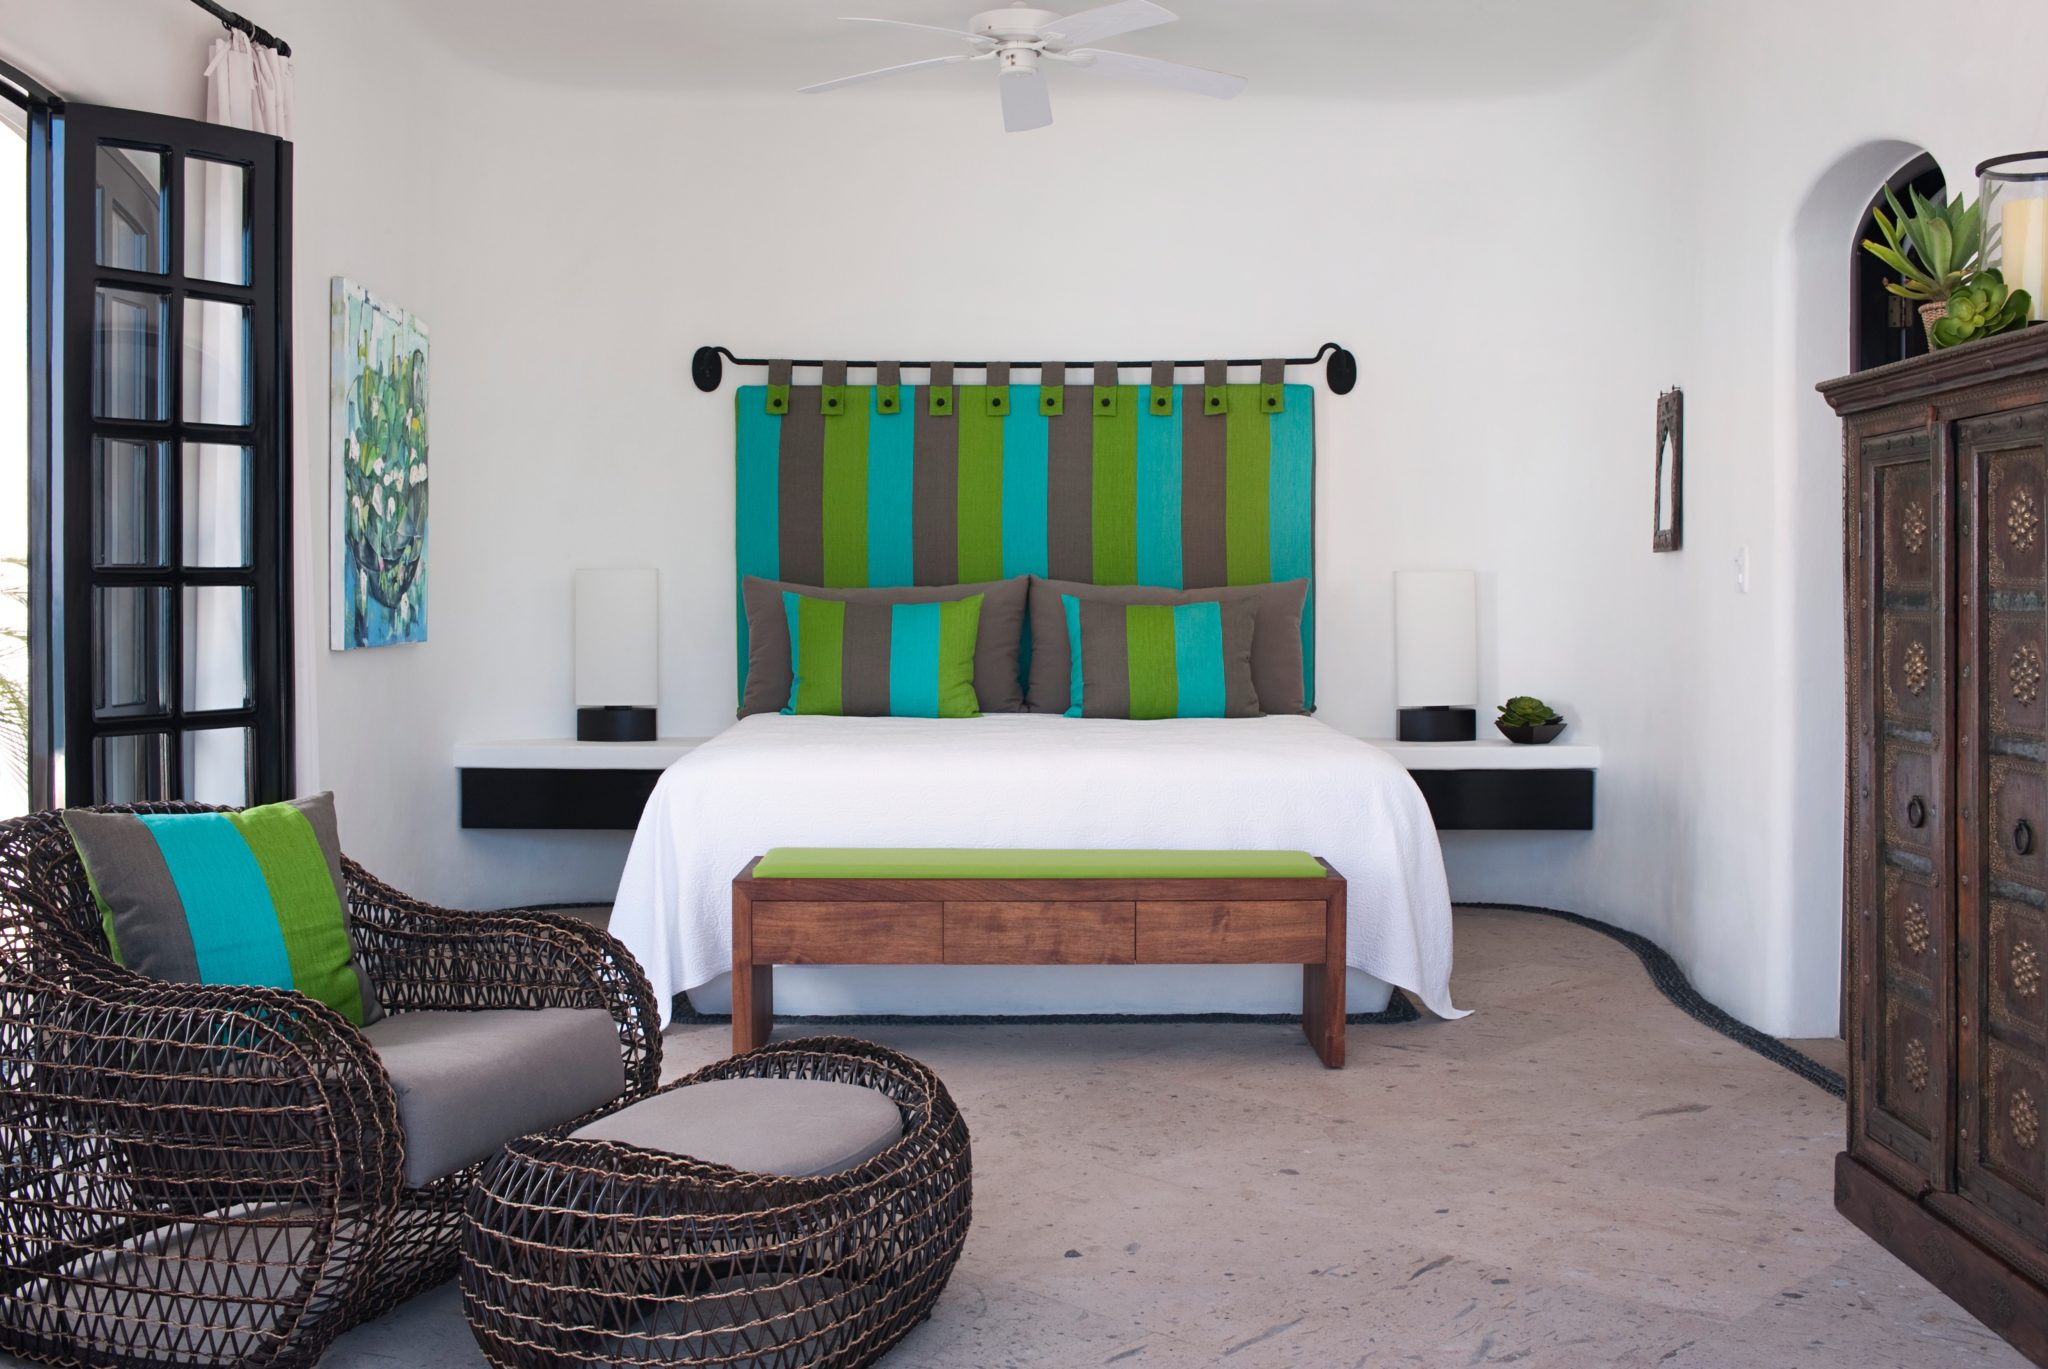 Guest Bedroom in a Mexico Compound by Woody Argall Design